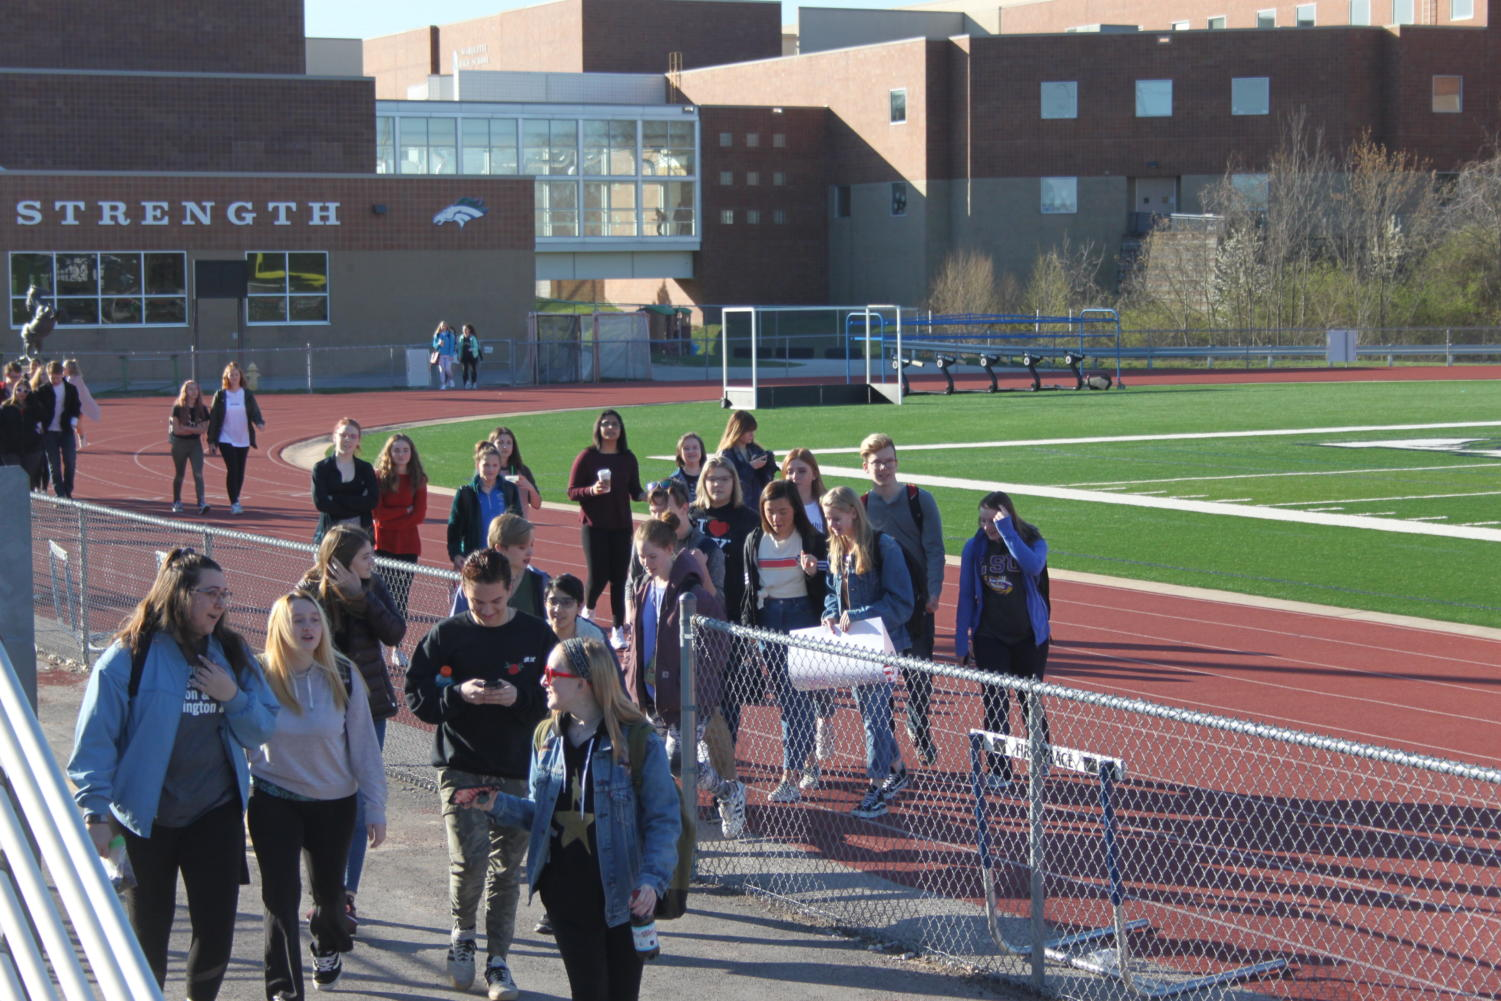 Students+walk+out+of+school+at+8%3A10+a.m.+on+Friday%2C+April+20%2C+which+marks+the+19th+anniversary+of+the+Columbine+shooting.+Students+all+around+the+nation+participated+in+the+Walkout+to+call+for+action+against+gun+violence.